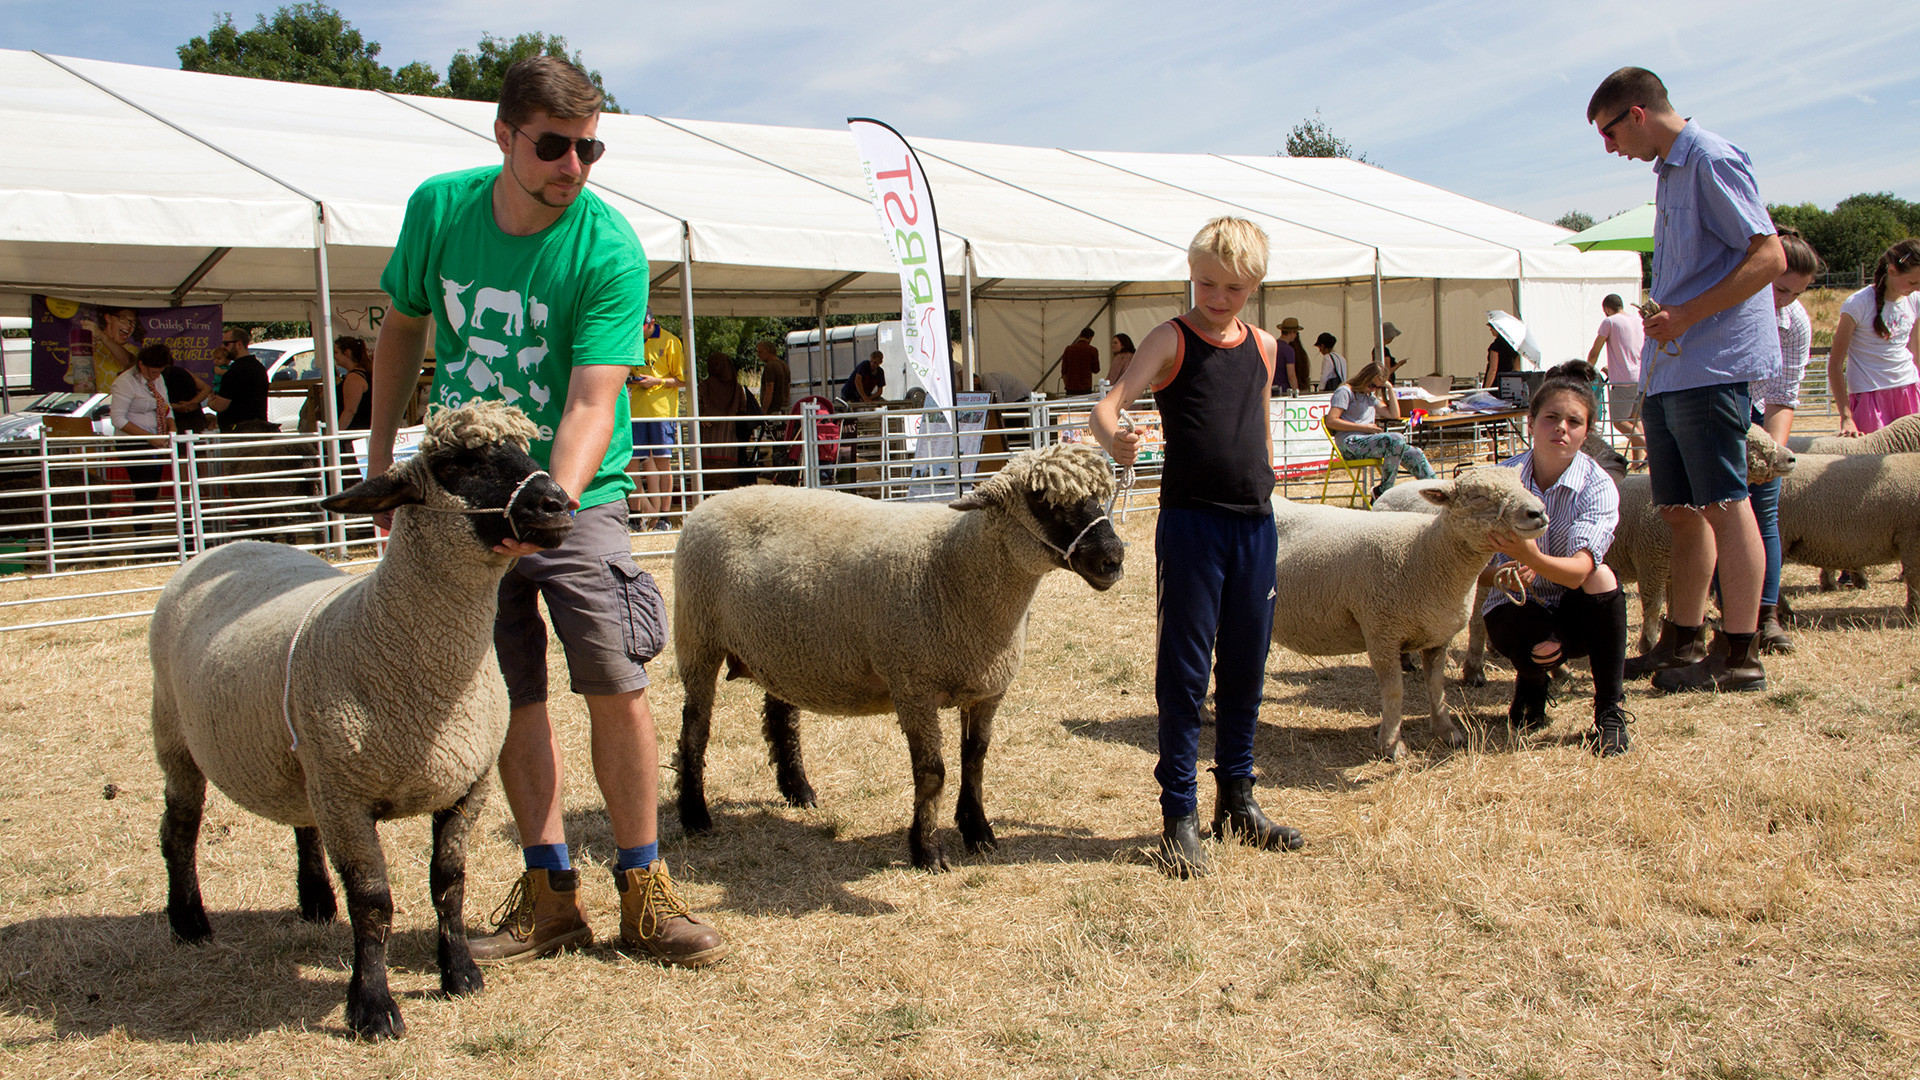 The Mudchute Agricultural Show